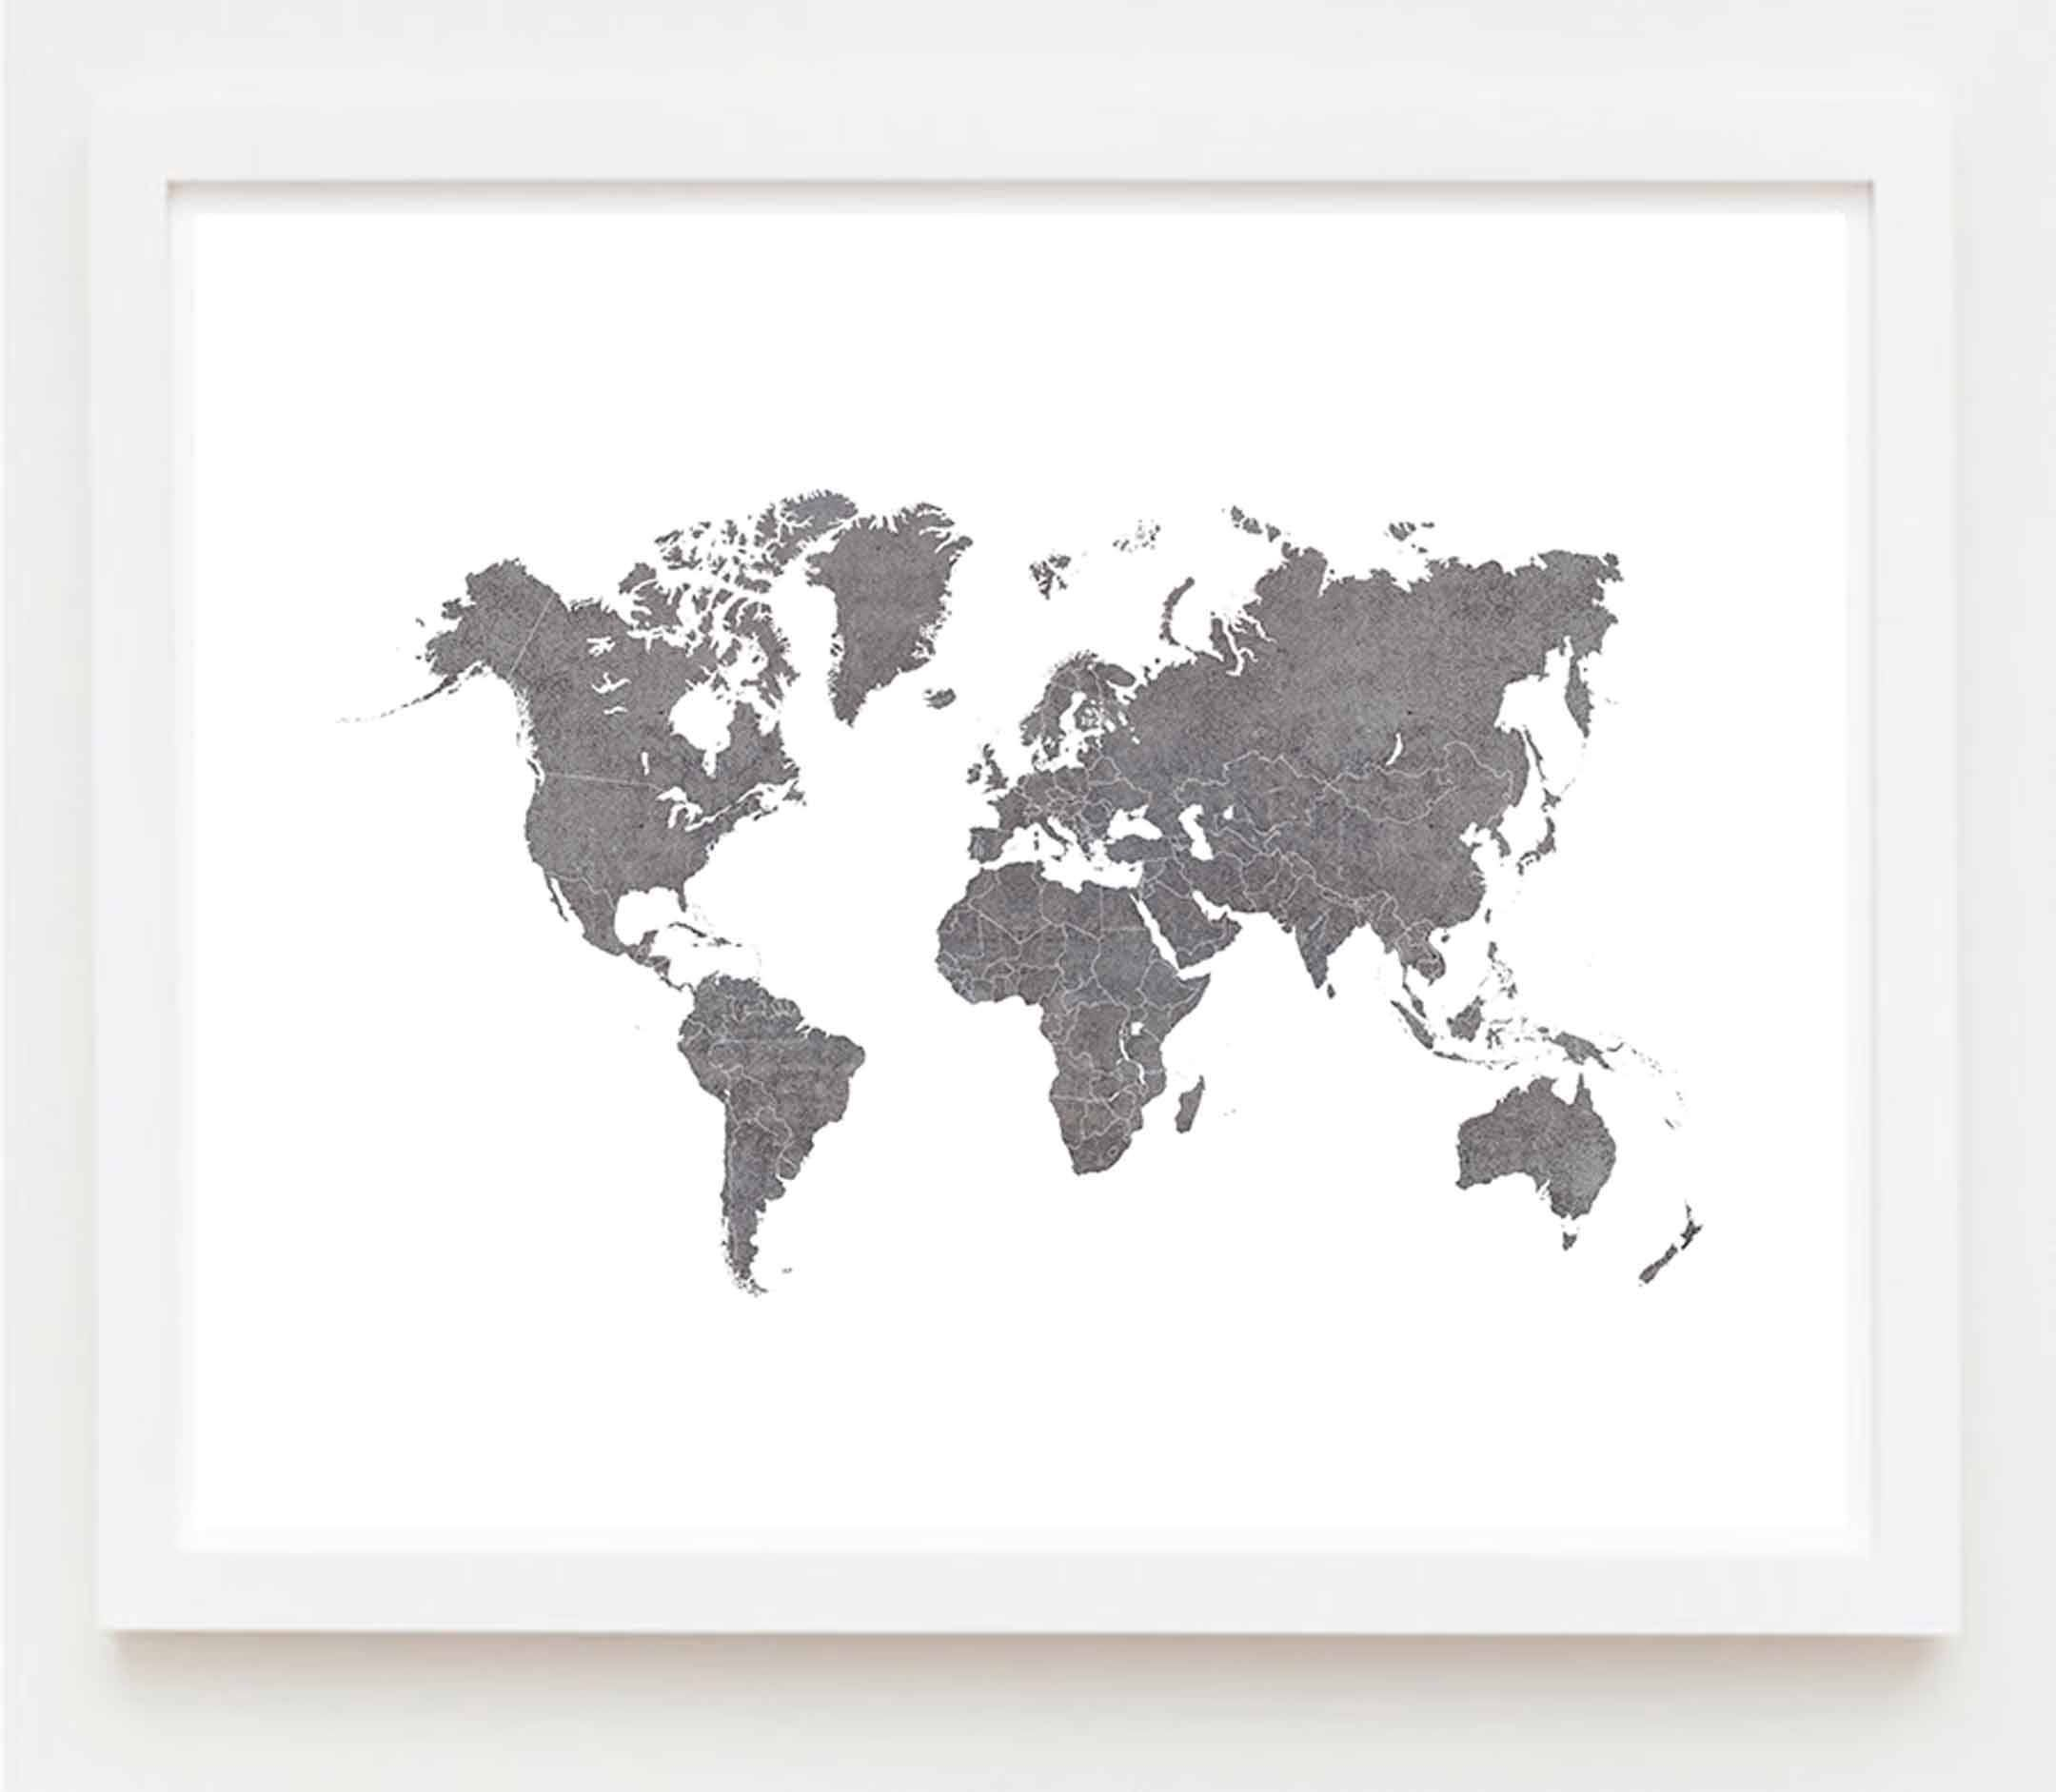 World map canvas art print download stone neutral gray extra large world map canvas art print download stone neutral gray extra large wall art scandinavian decor oversized gumiabroncs Gallery